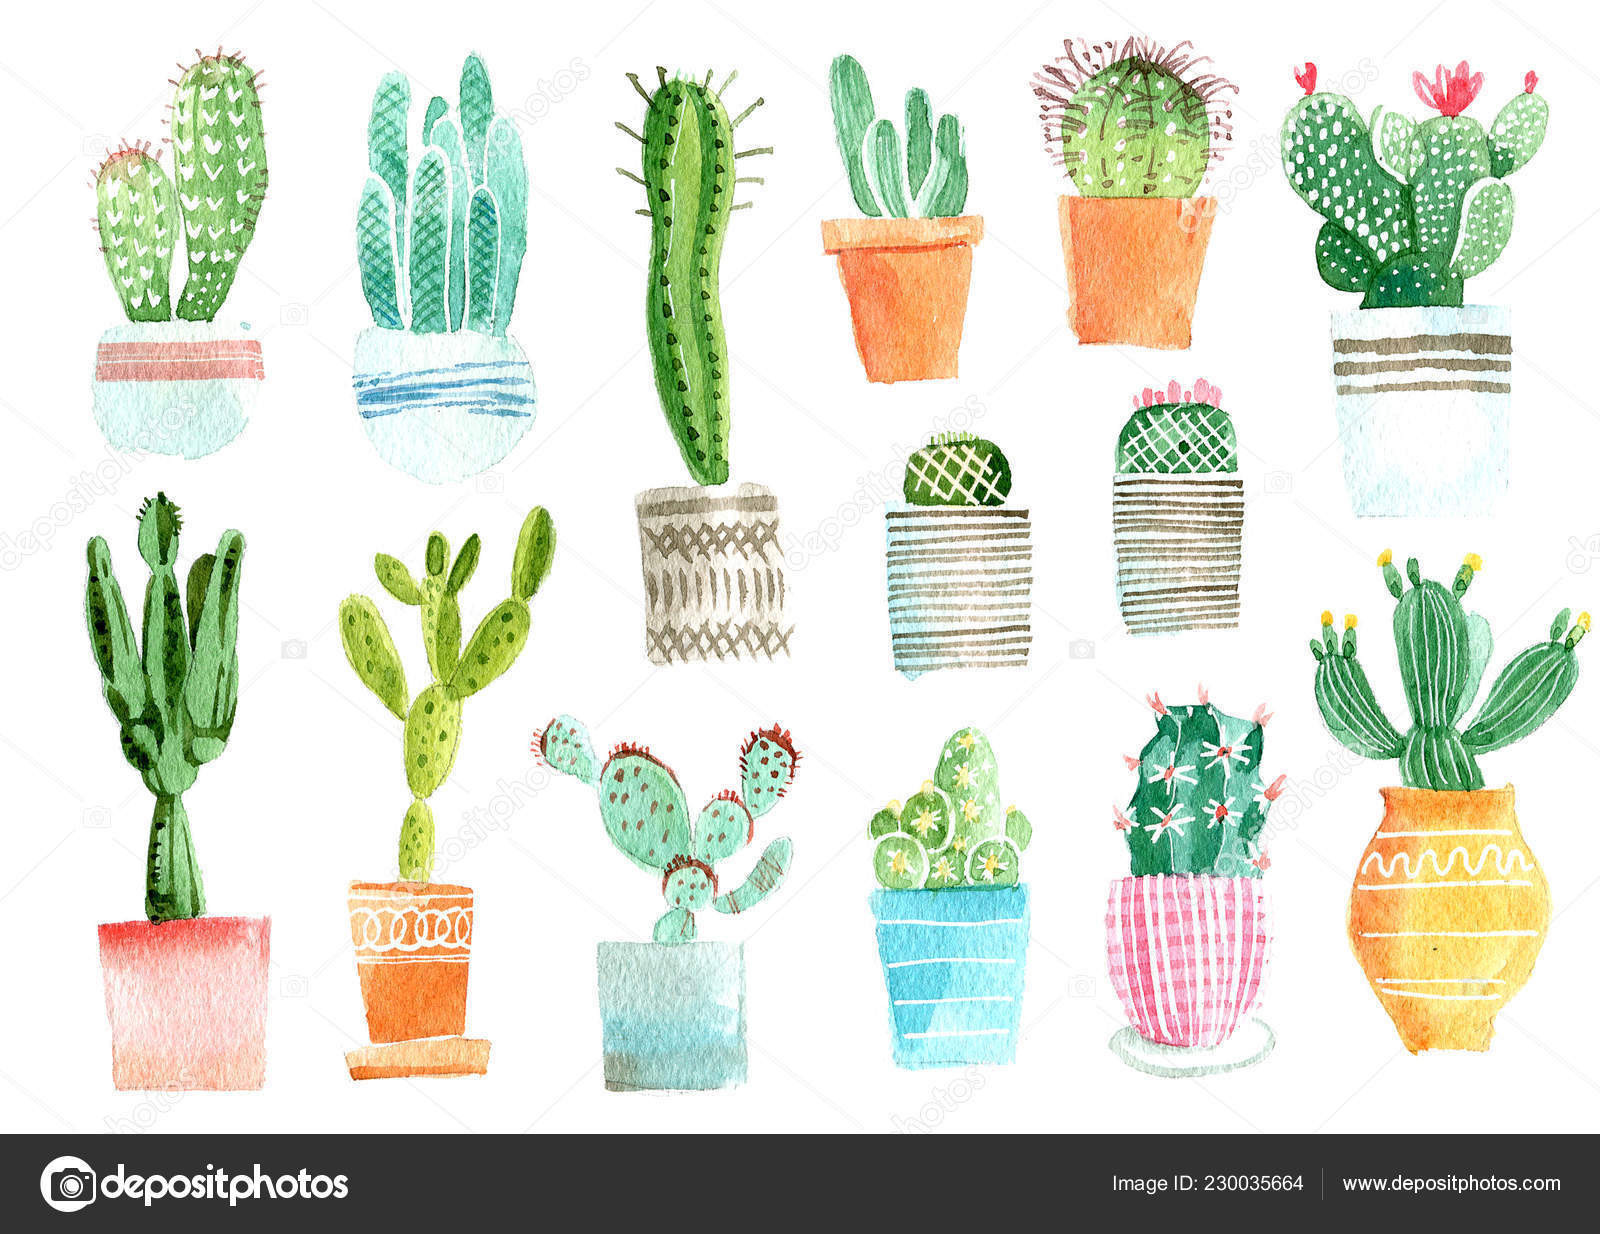 Cactus Watercolor Hand Draw Illustration Isolated White Background